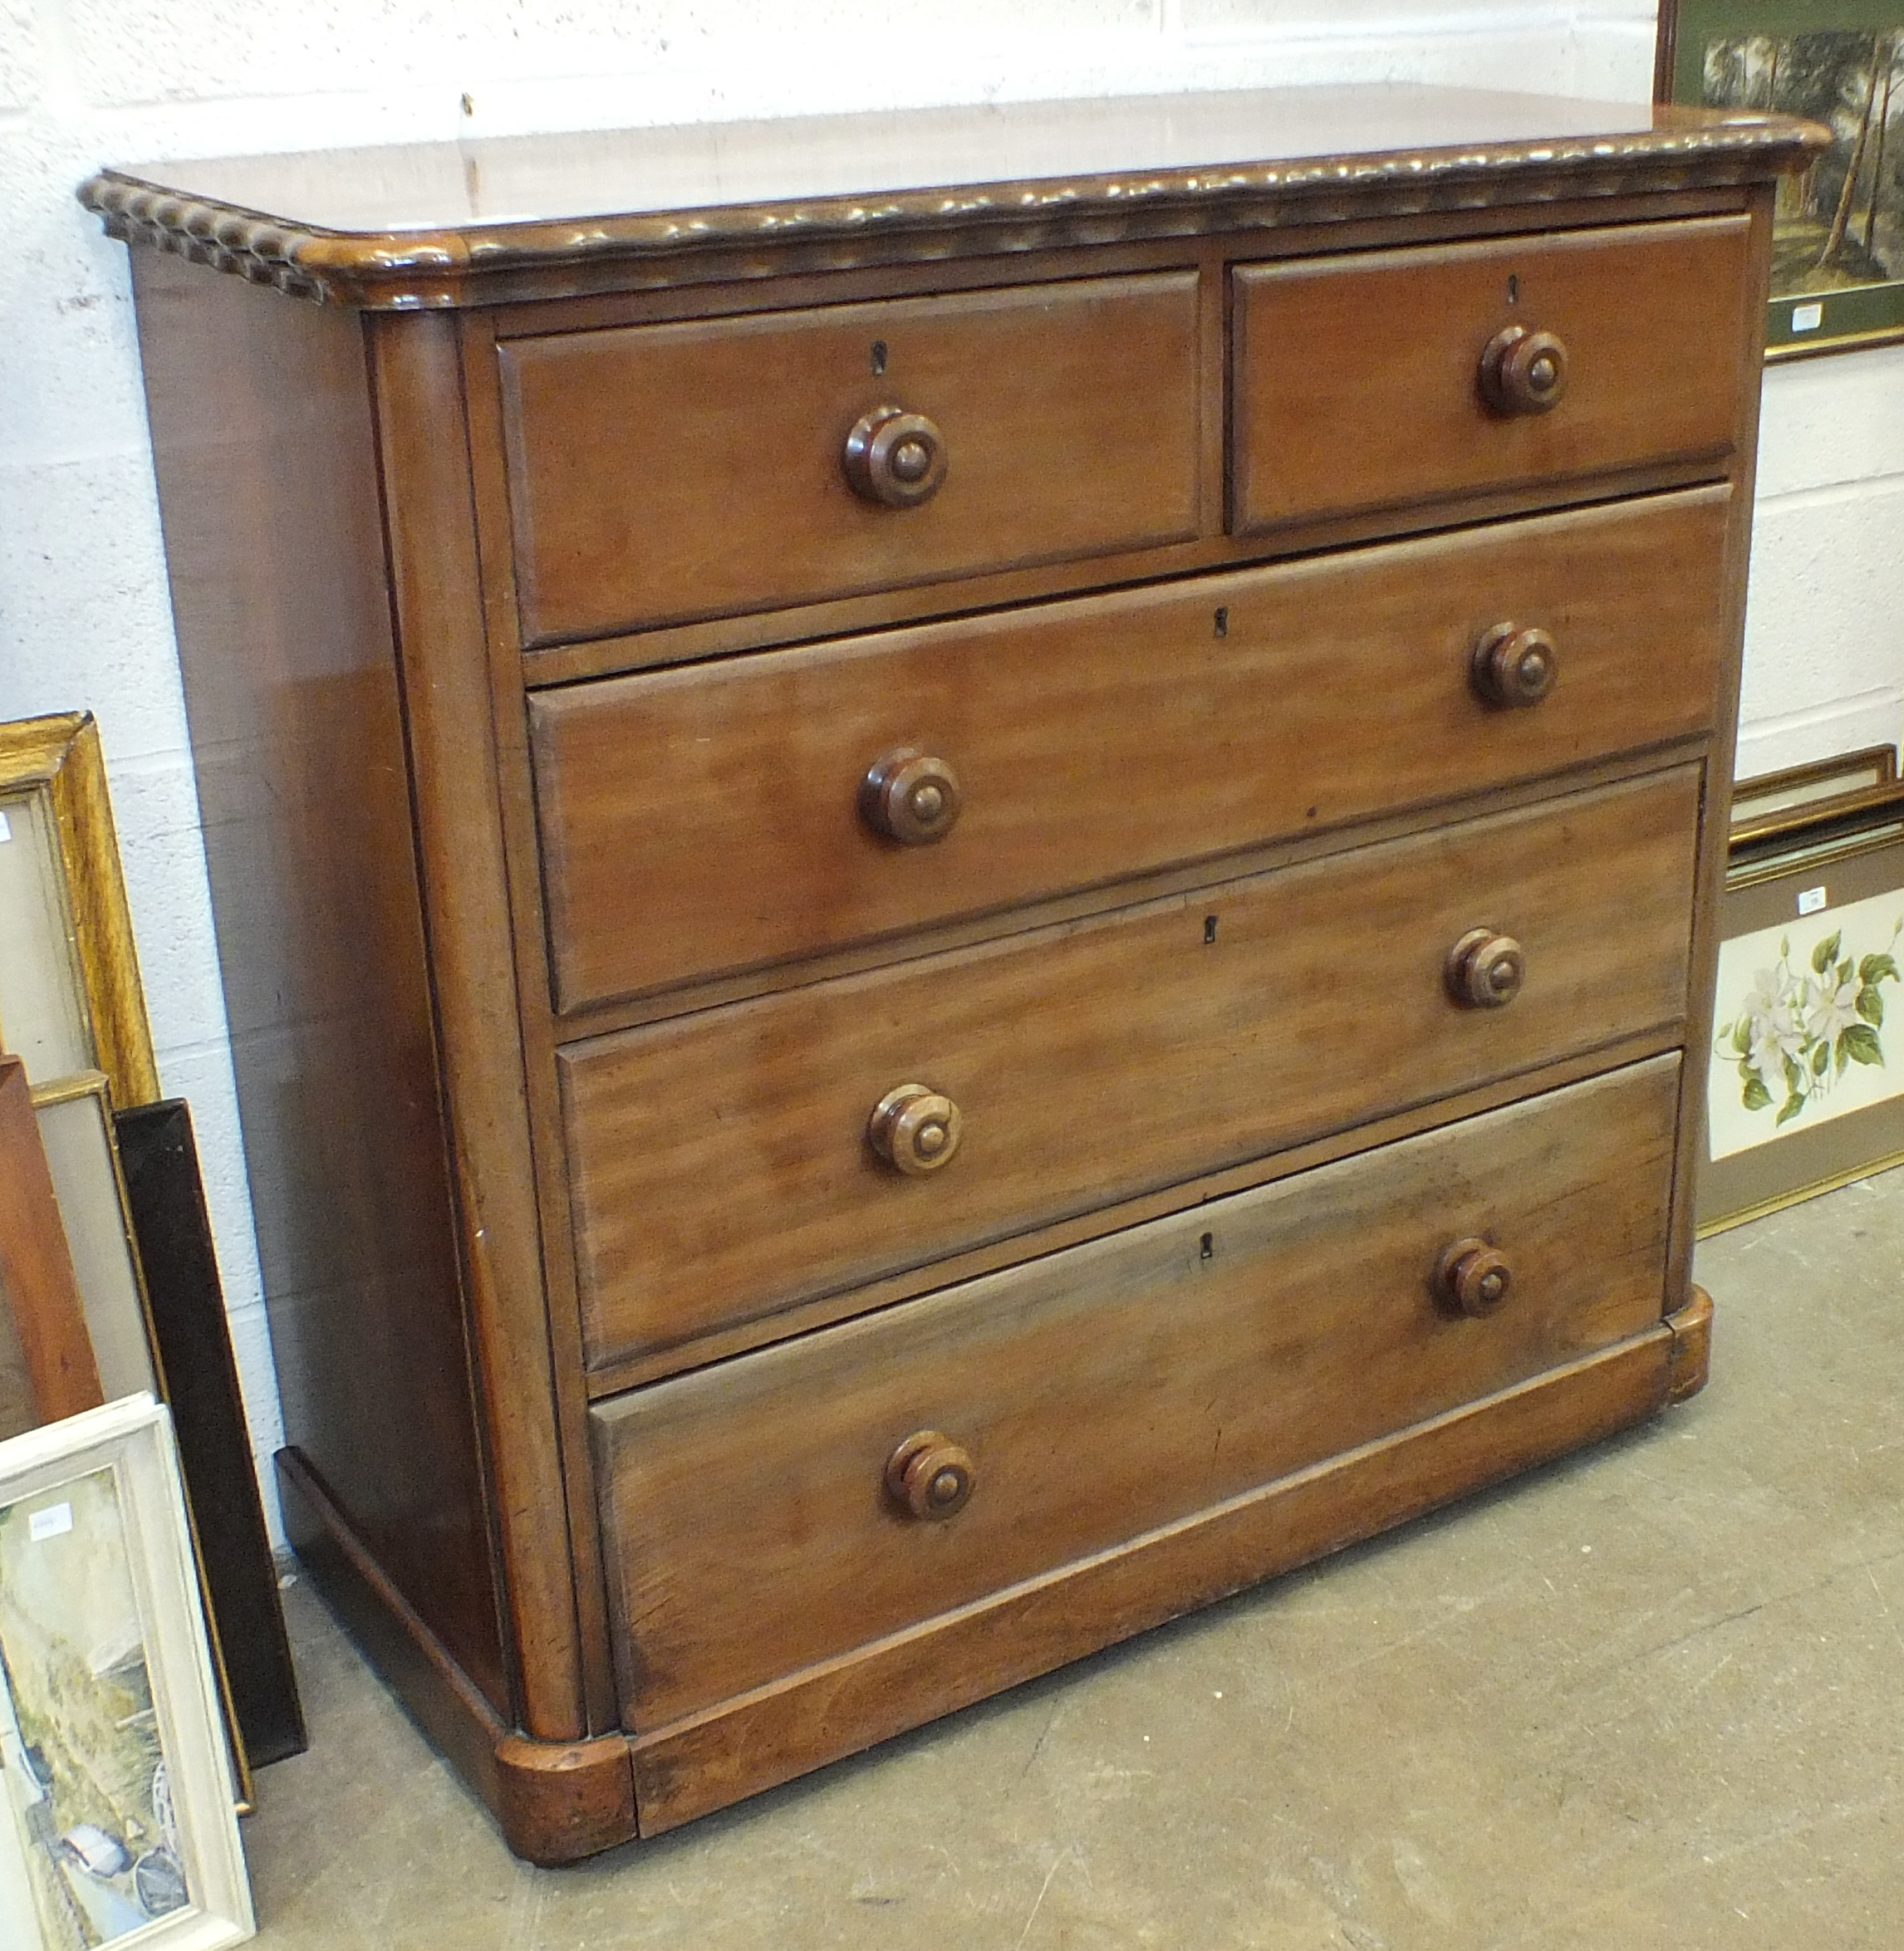 Lot 4 - A mahogany finish straight-front chest, the rectangular top with wavy edge above two small and three